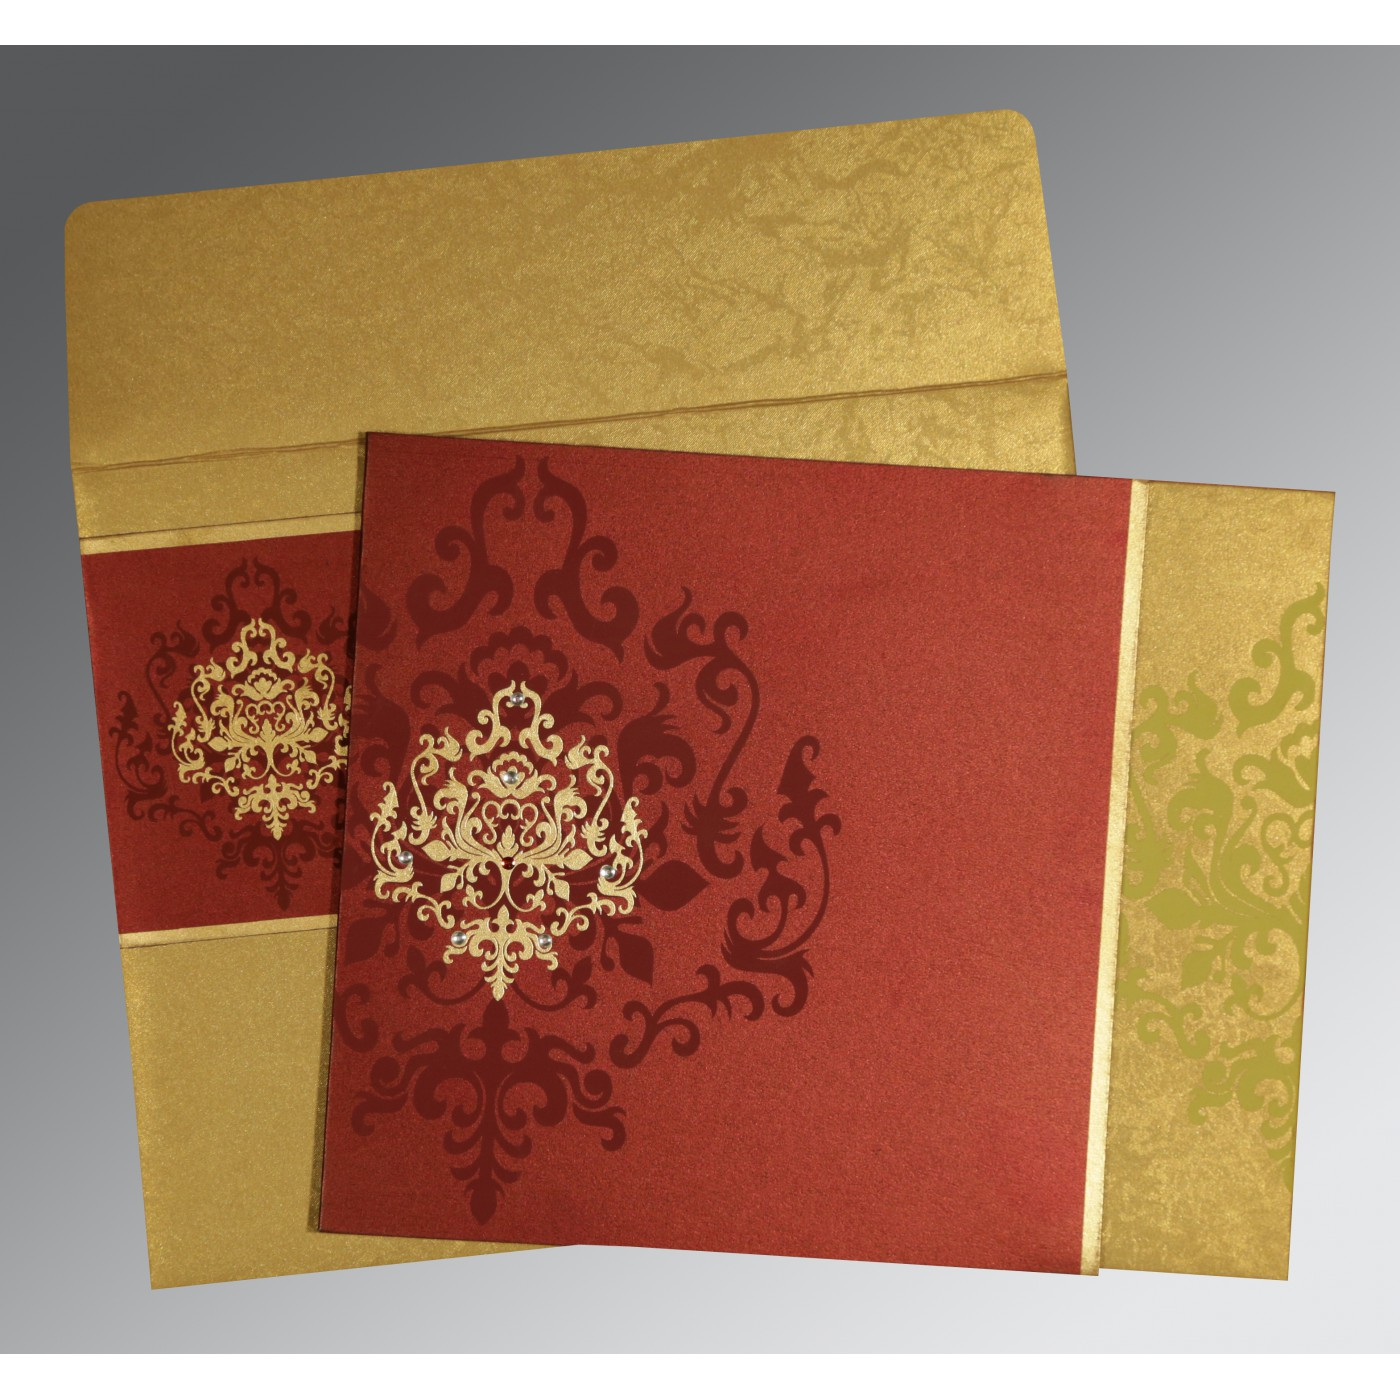 Wine Red Gold Shimmery Damask Themed Screen Printed Wedding Card